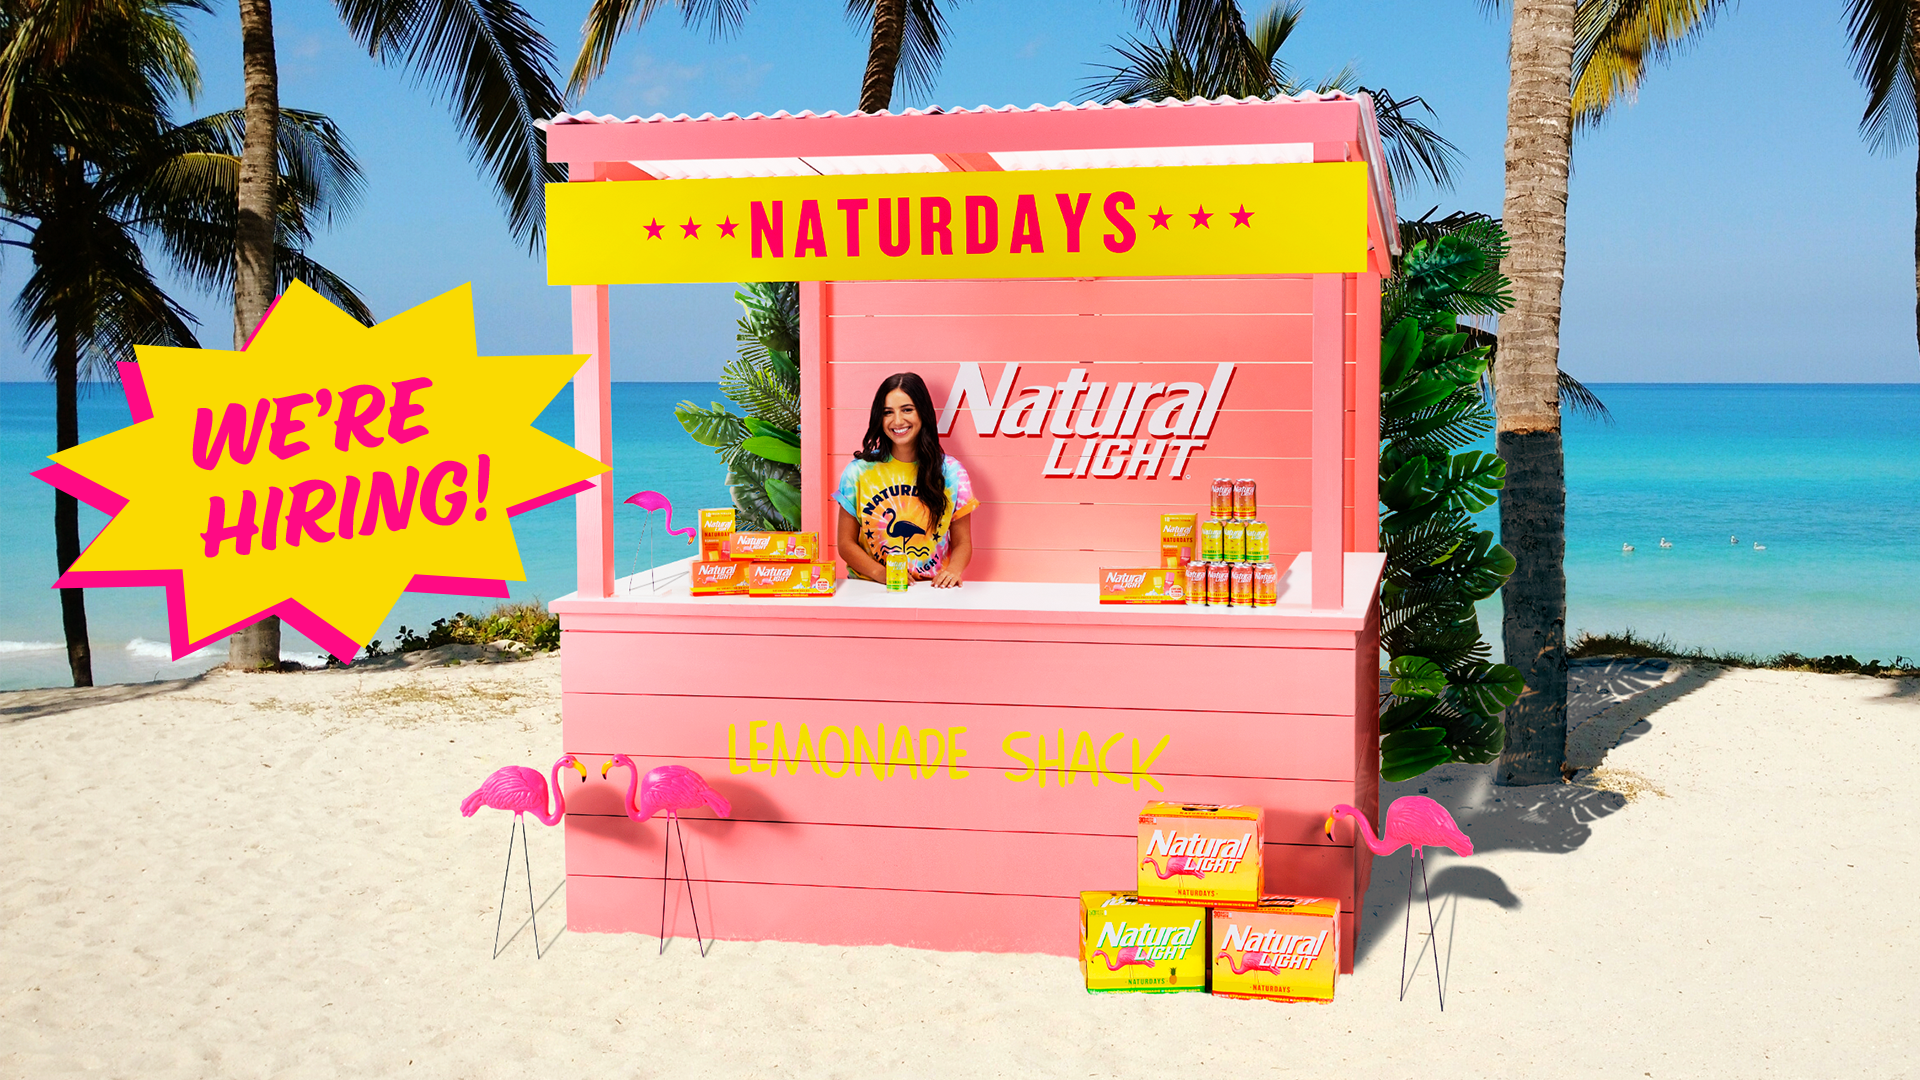 Strapped for cash? Natural Light is offering a bonus up to $25,000 for this gig